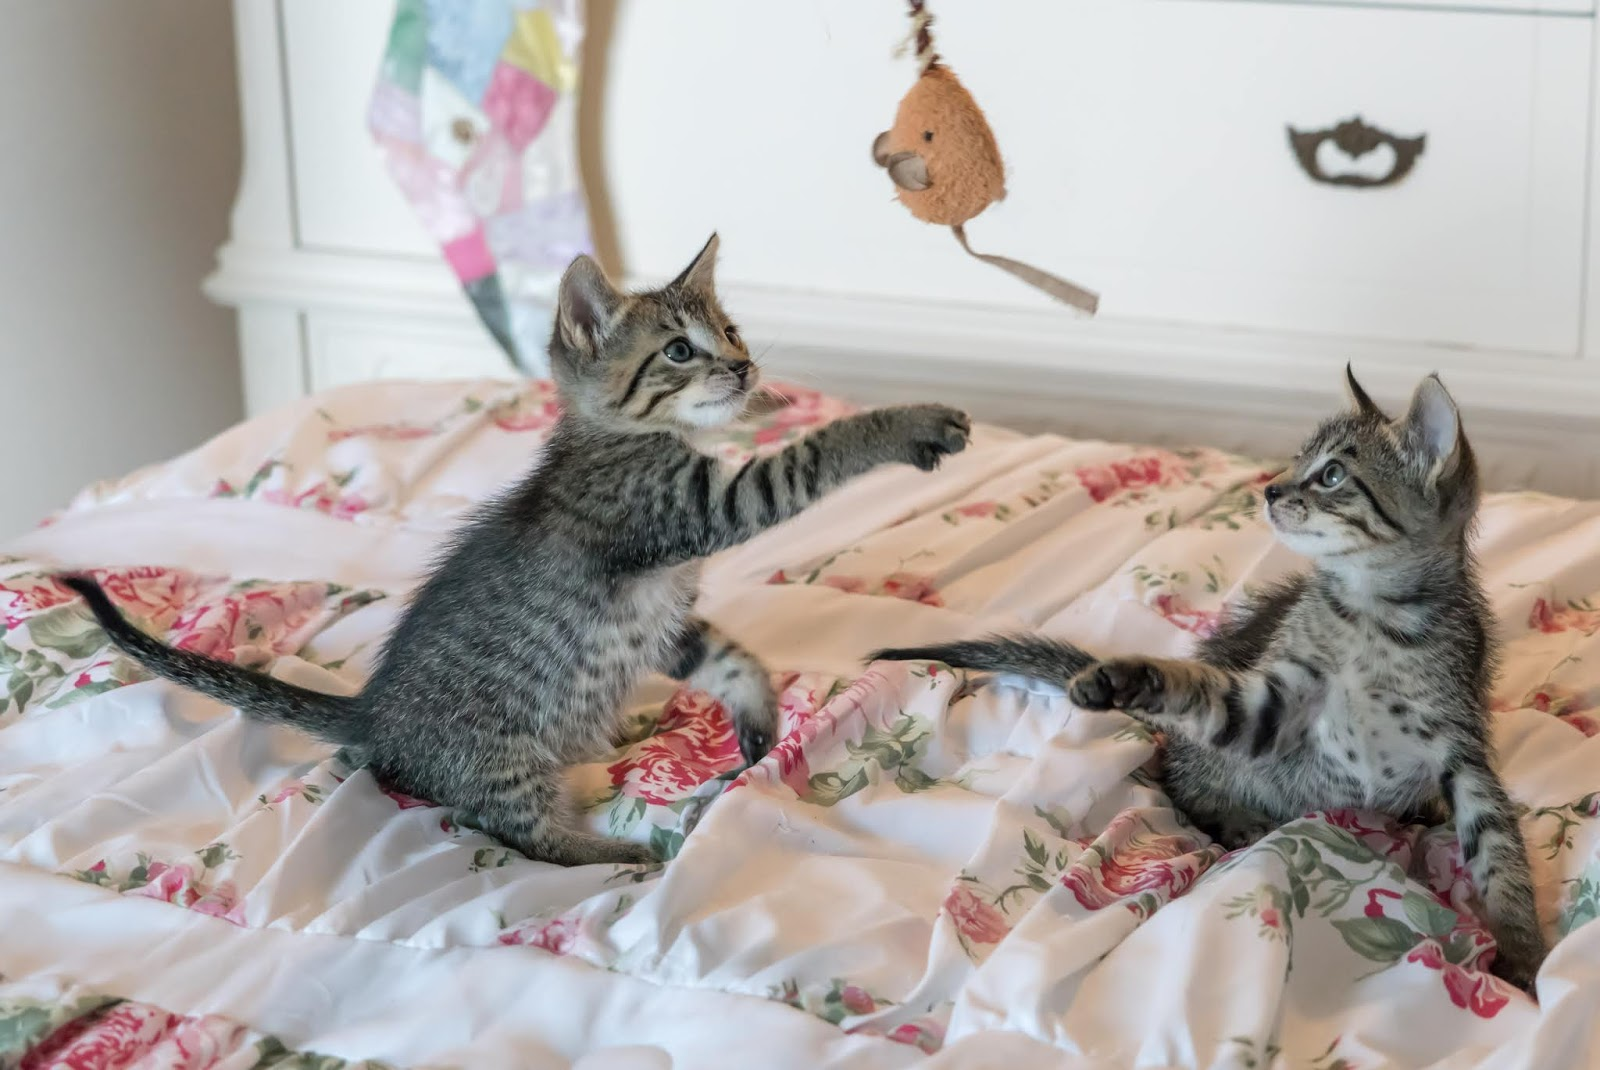 Tabby kittens on floral comforter,cat images